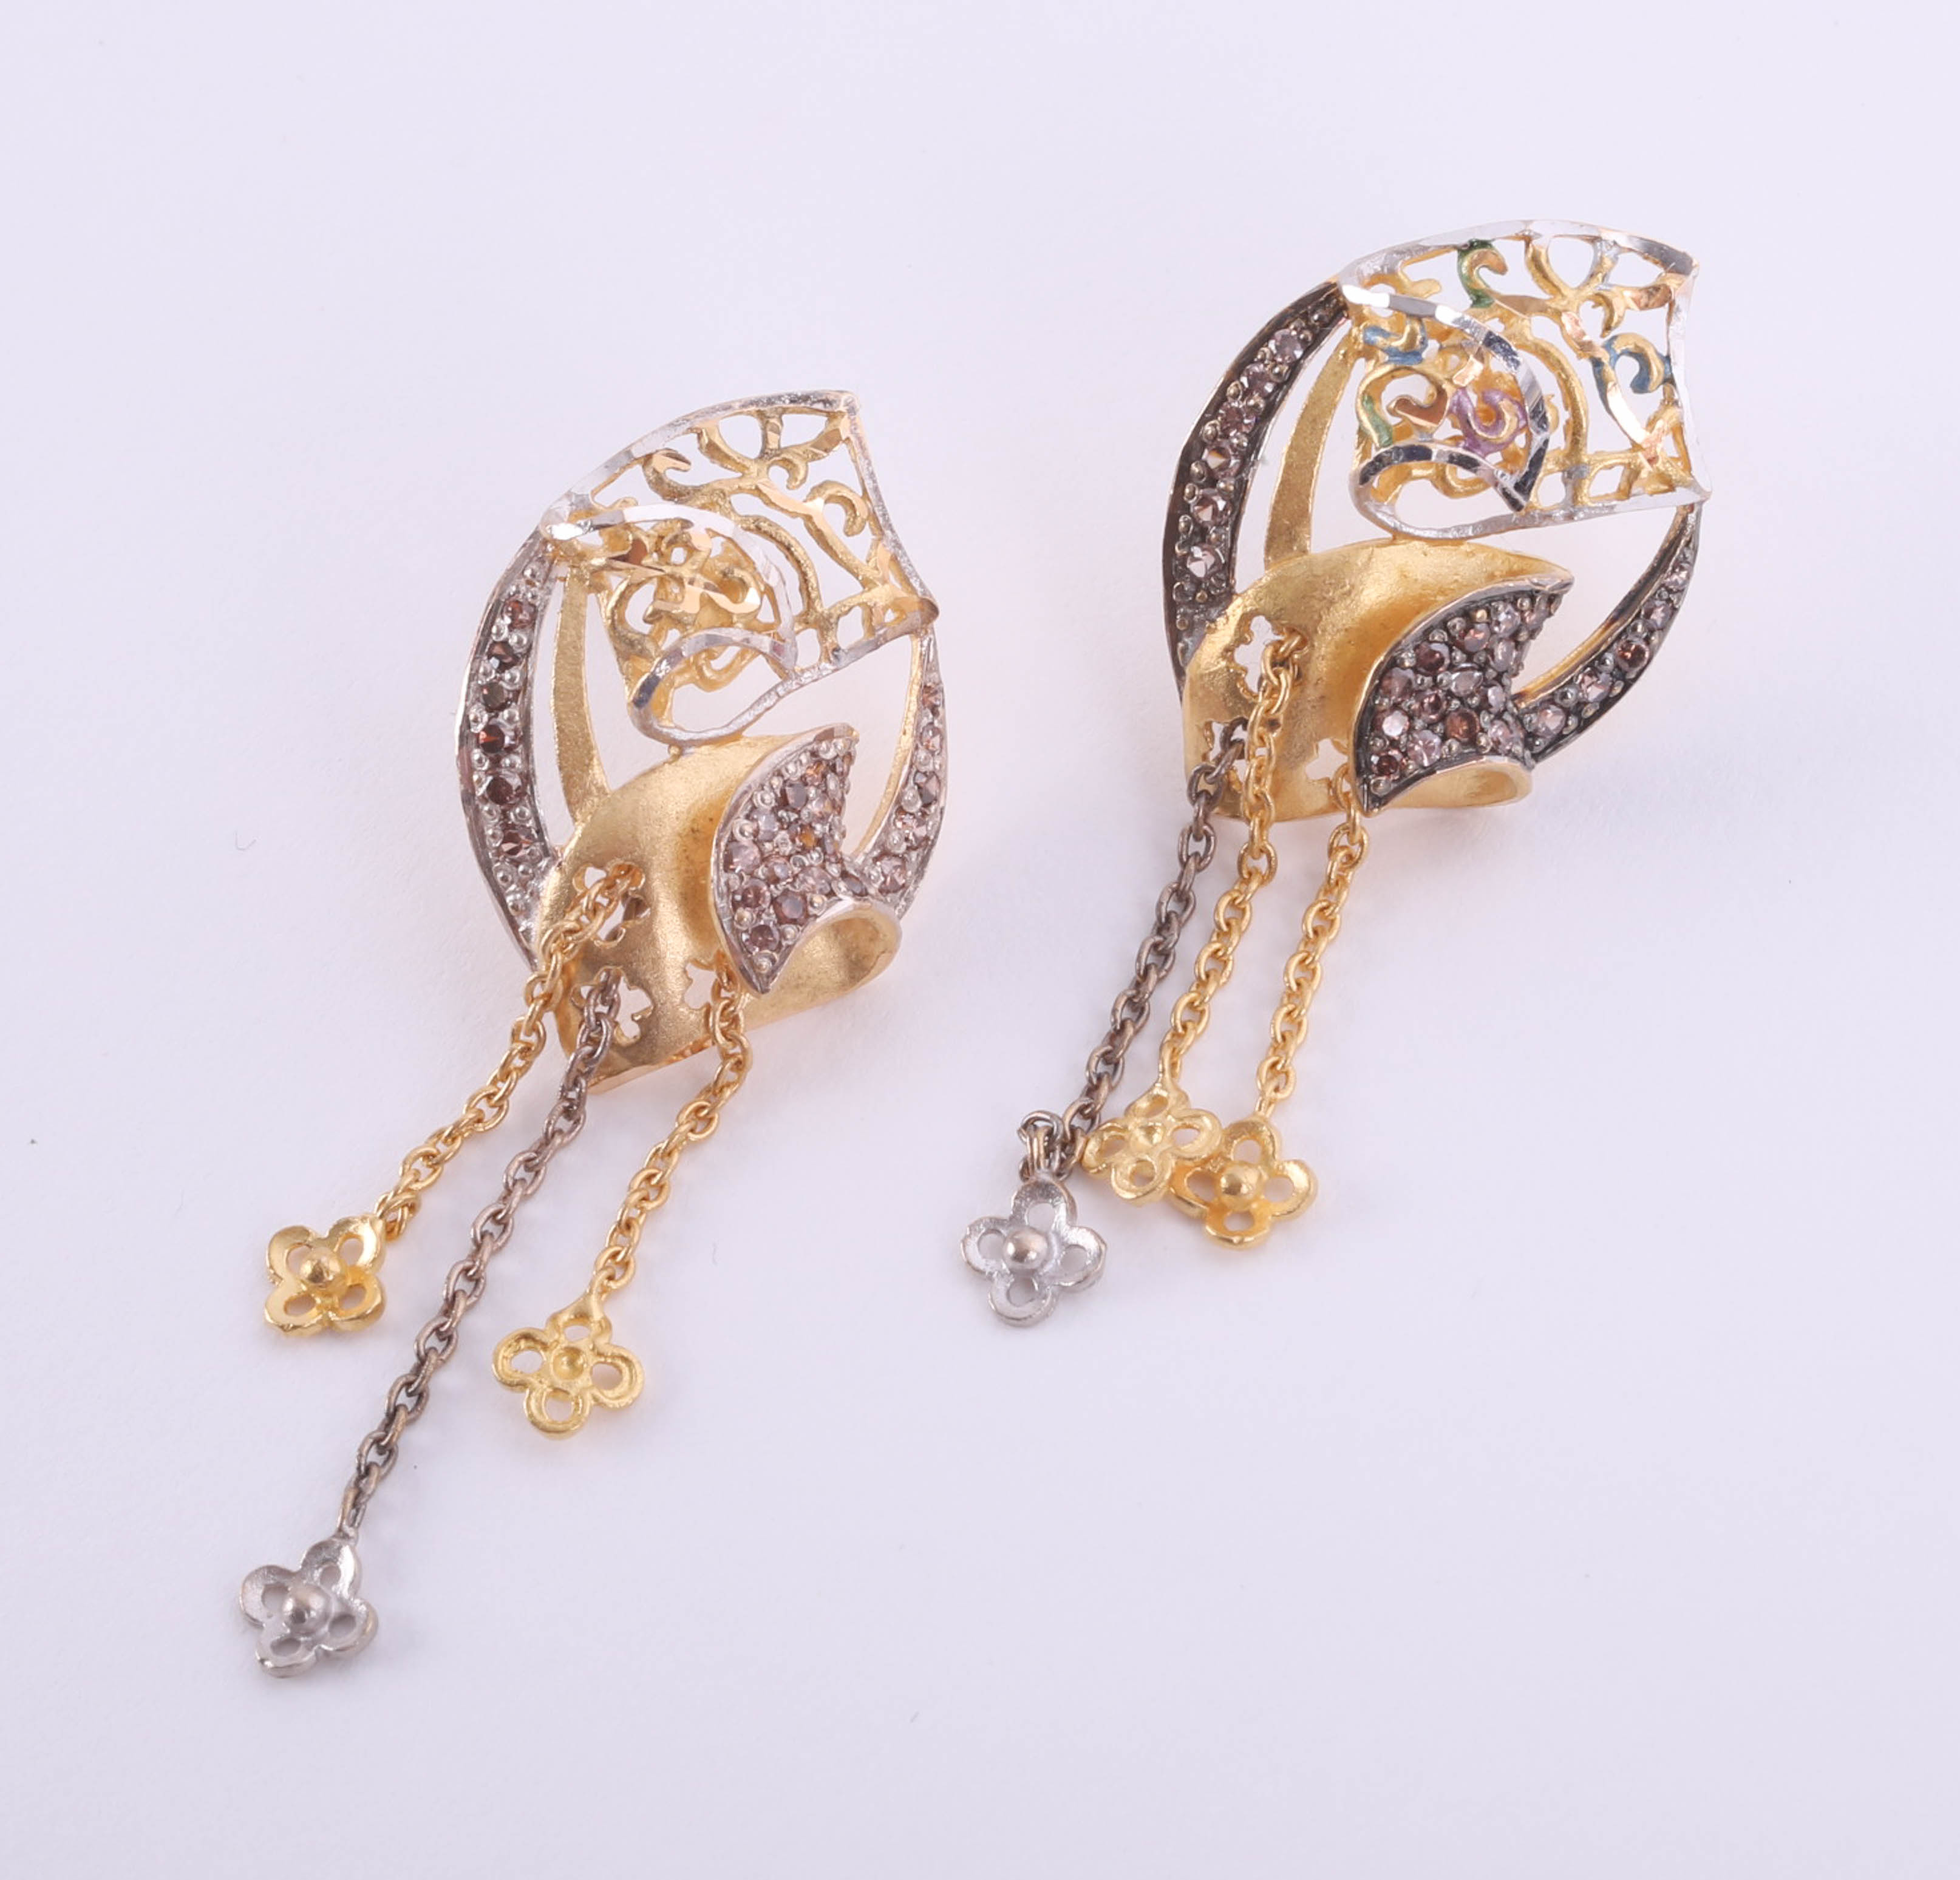 Lot 044 - A pair of Mansura Arabic high carat gold earrings, Arabic markings with purchase box marked Damas,